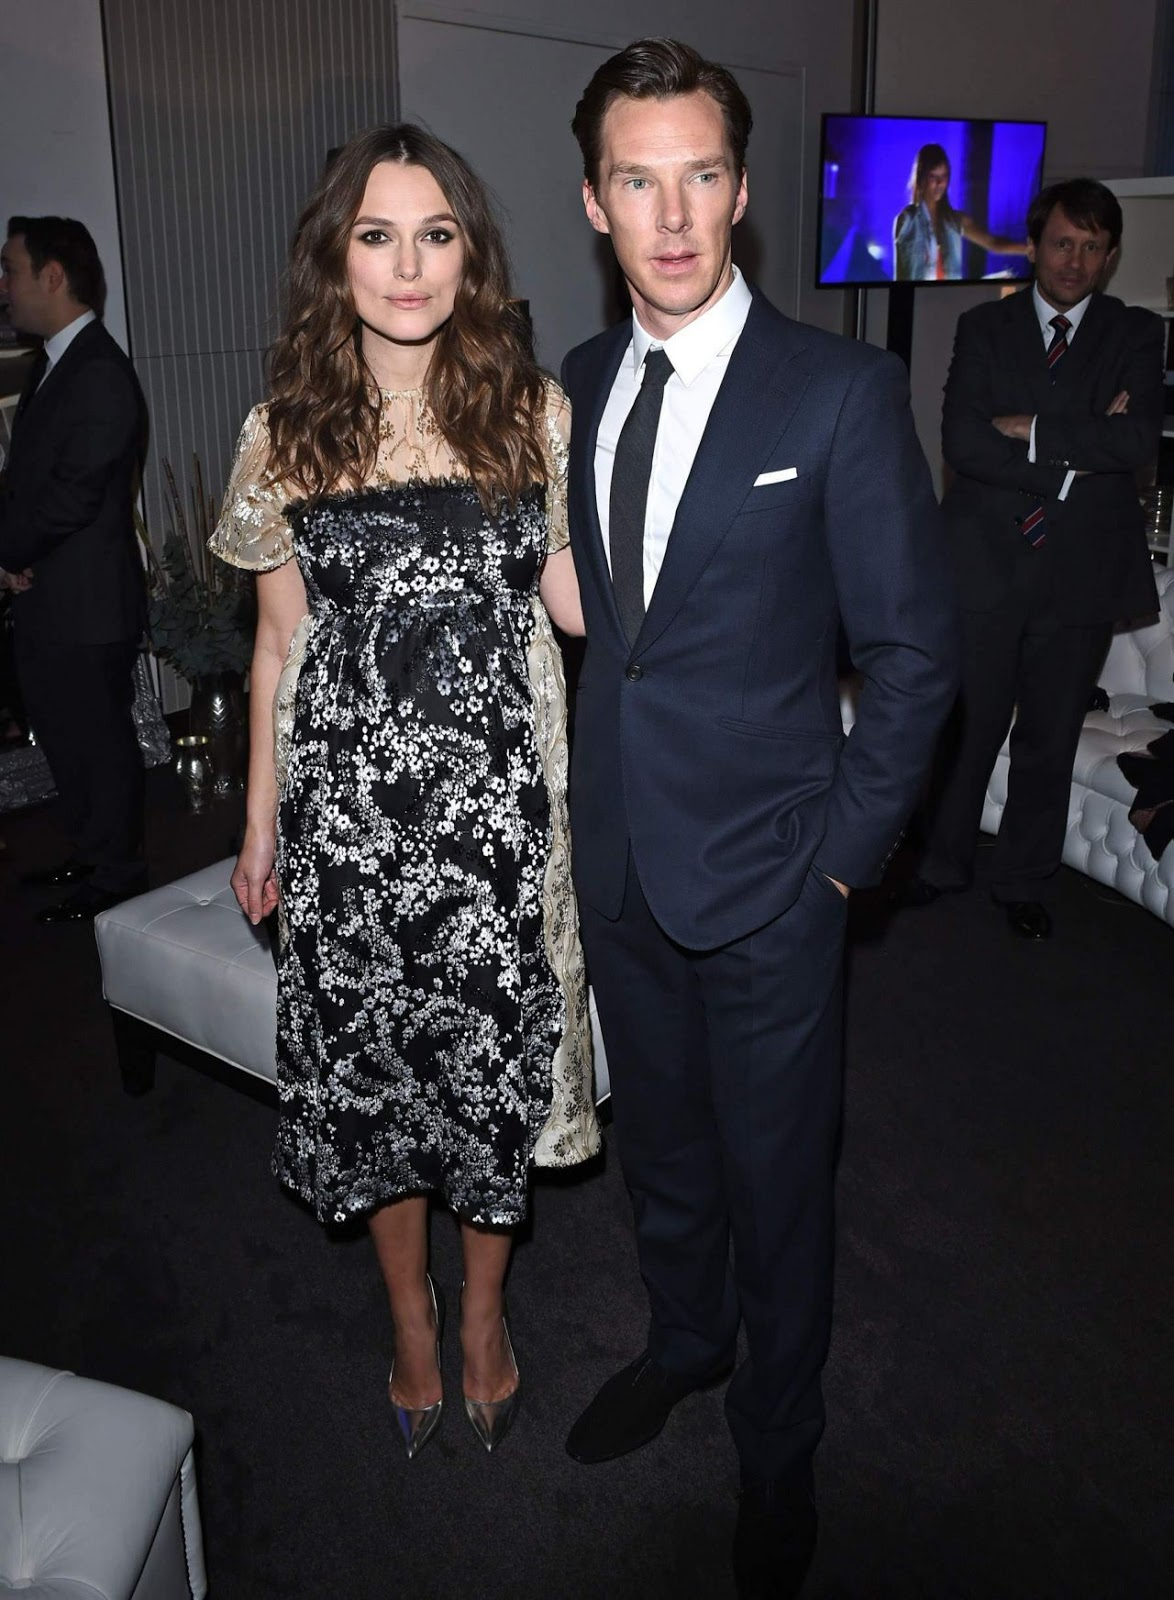 Keira Knightley flaunts baby bump at a pre-BAFTA bash in London